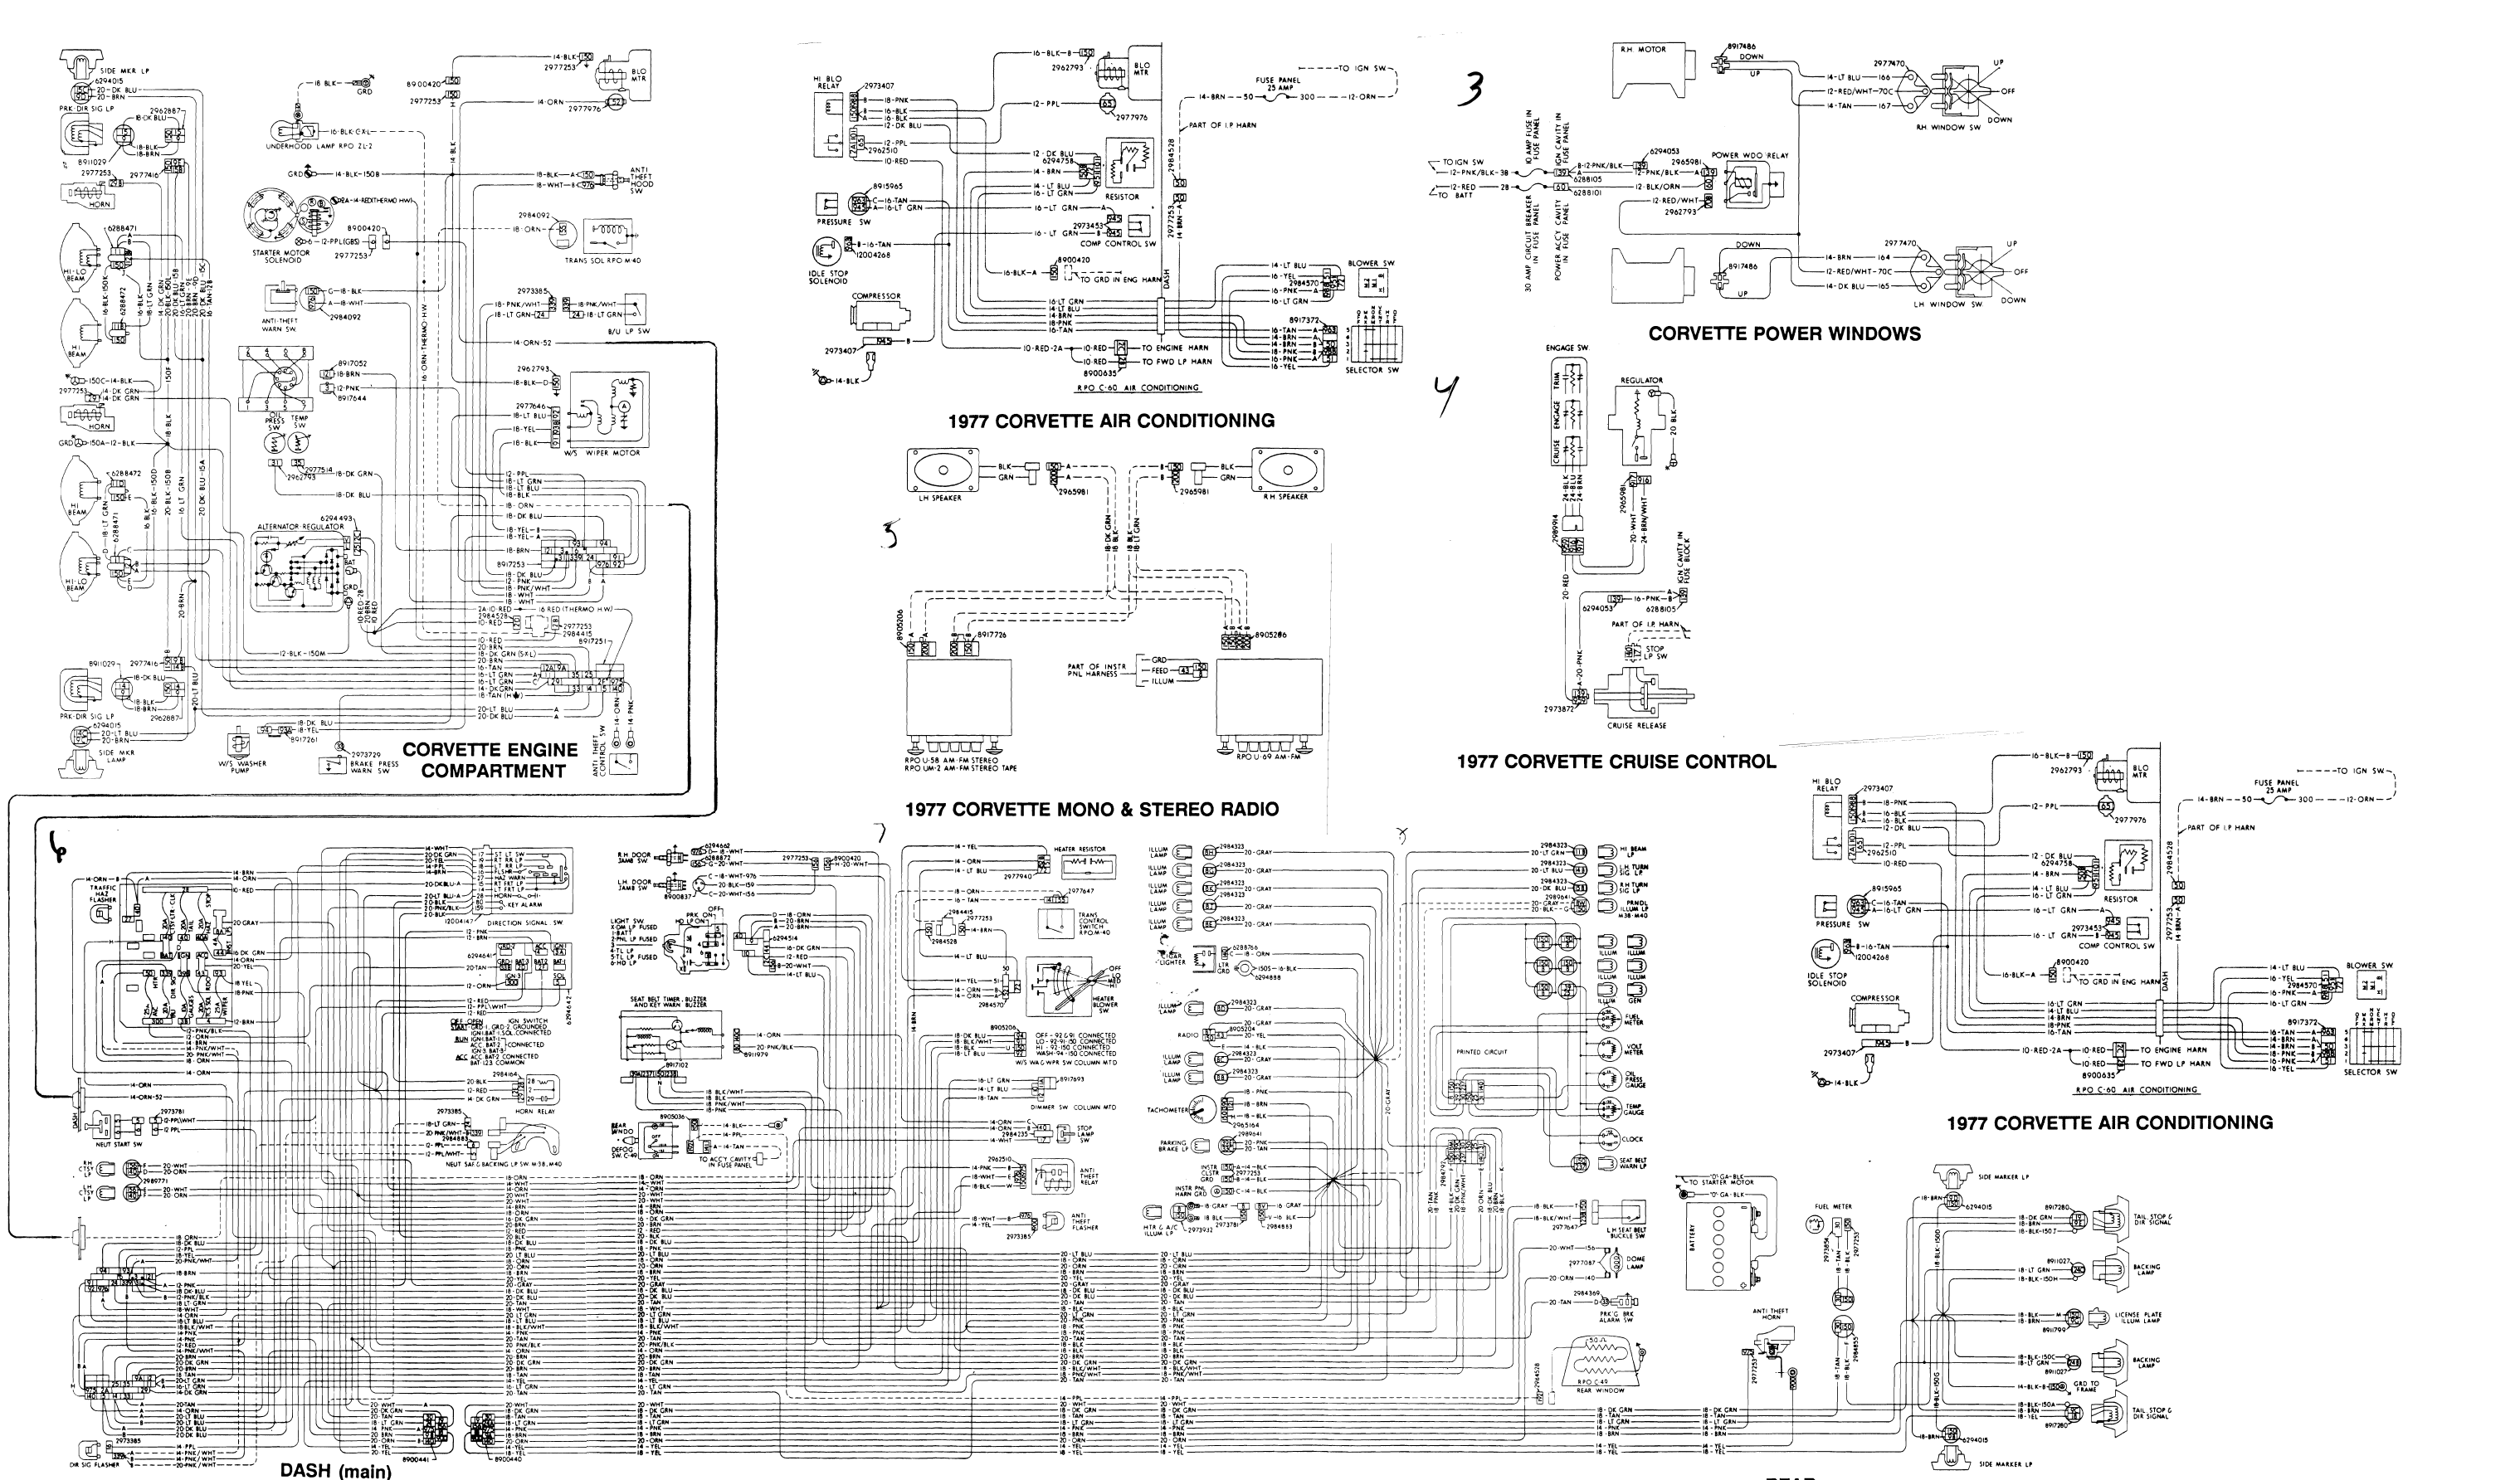 1977 trace harness website 1974 corvette tracer wiring diagram tracer schematic willcox 77 corvette wiring diagram at reclaimingppi.co